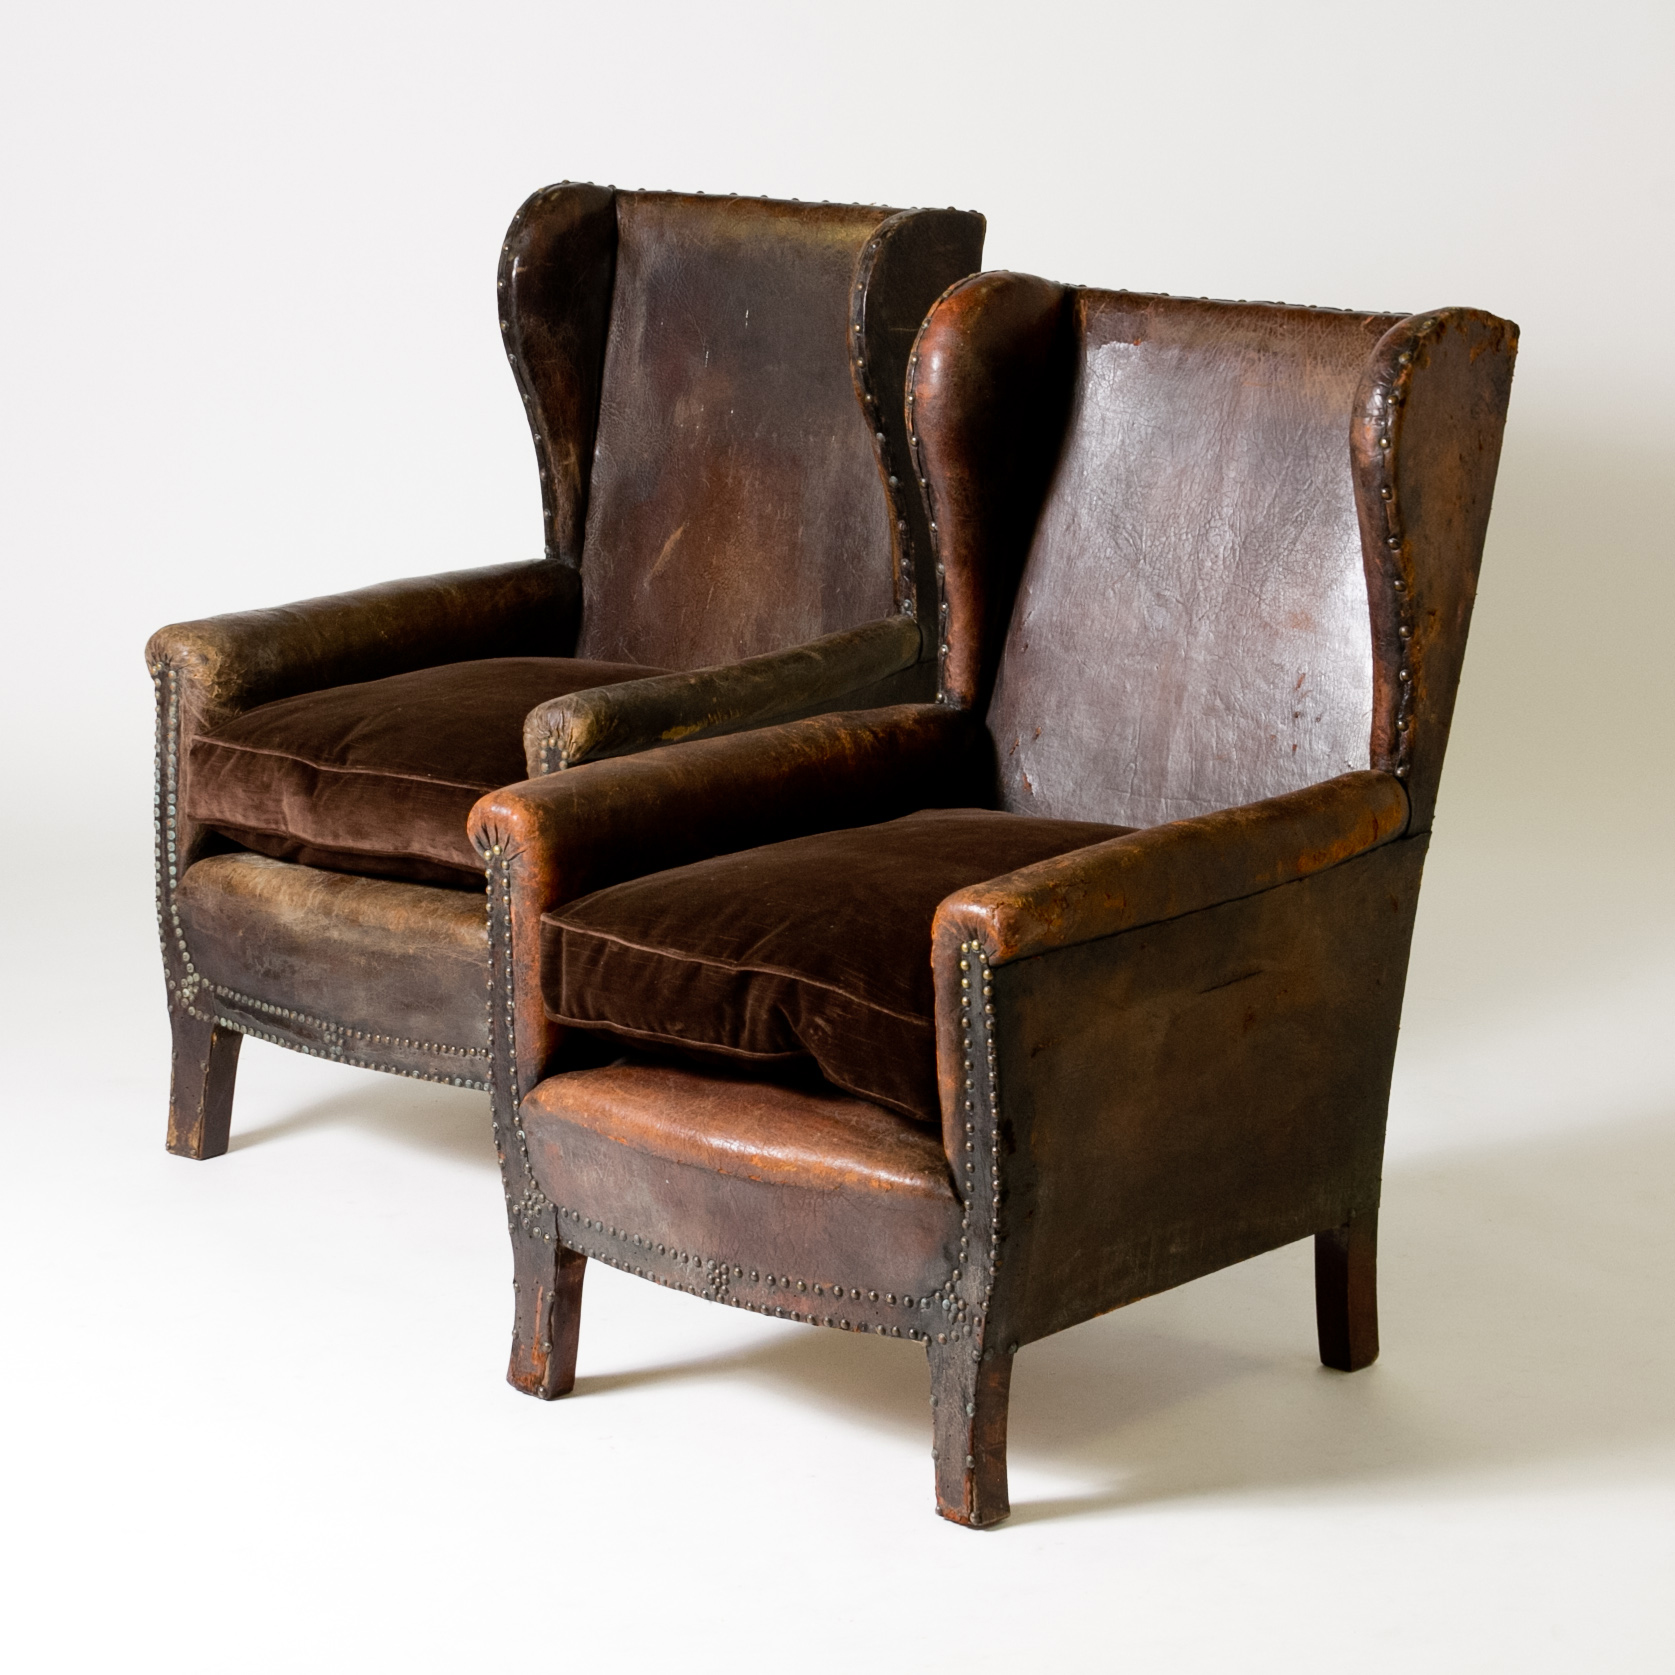 Philippines, Antiques and Chairs on Pinterest